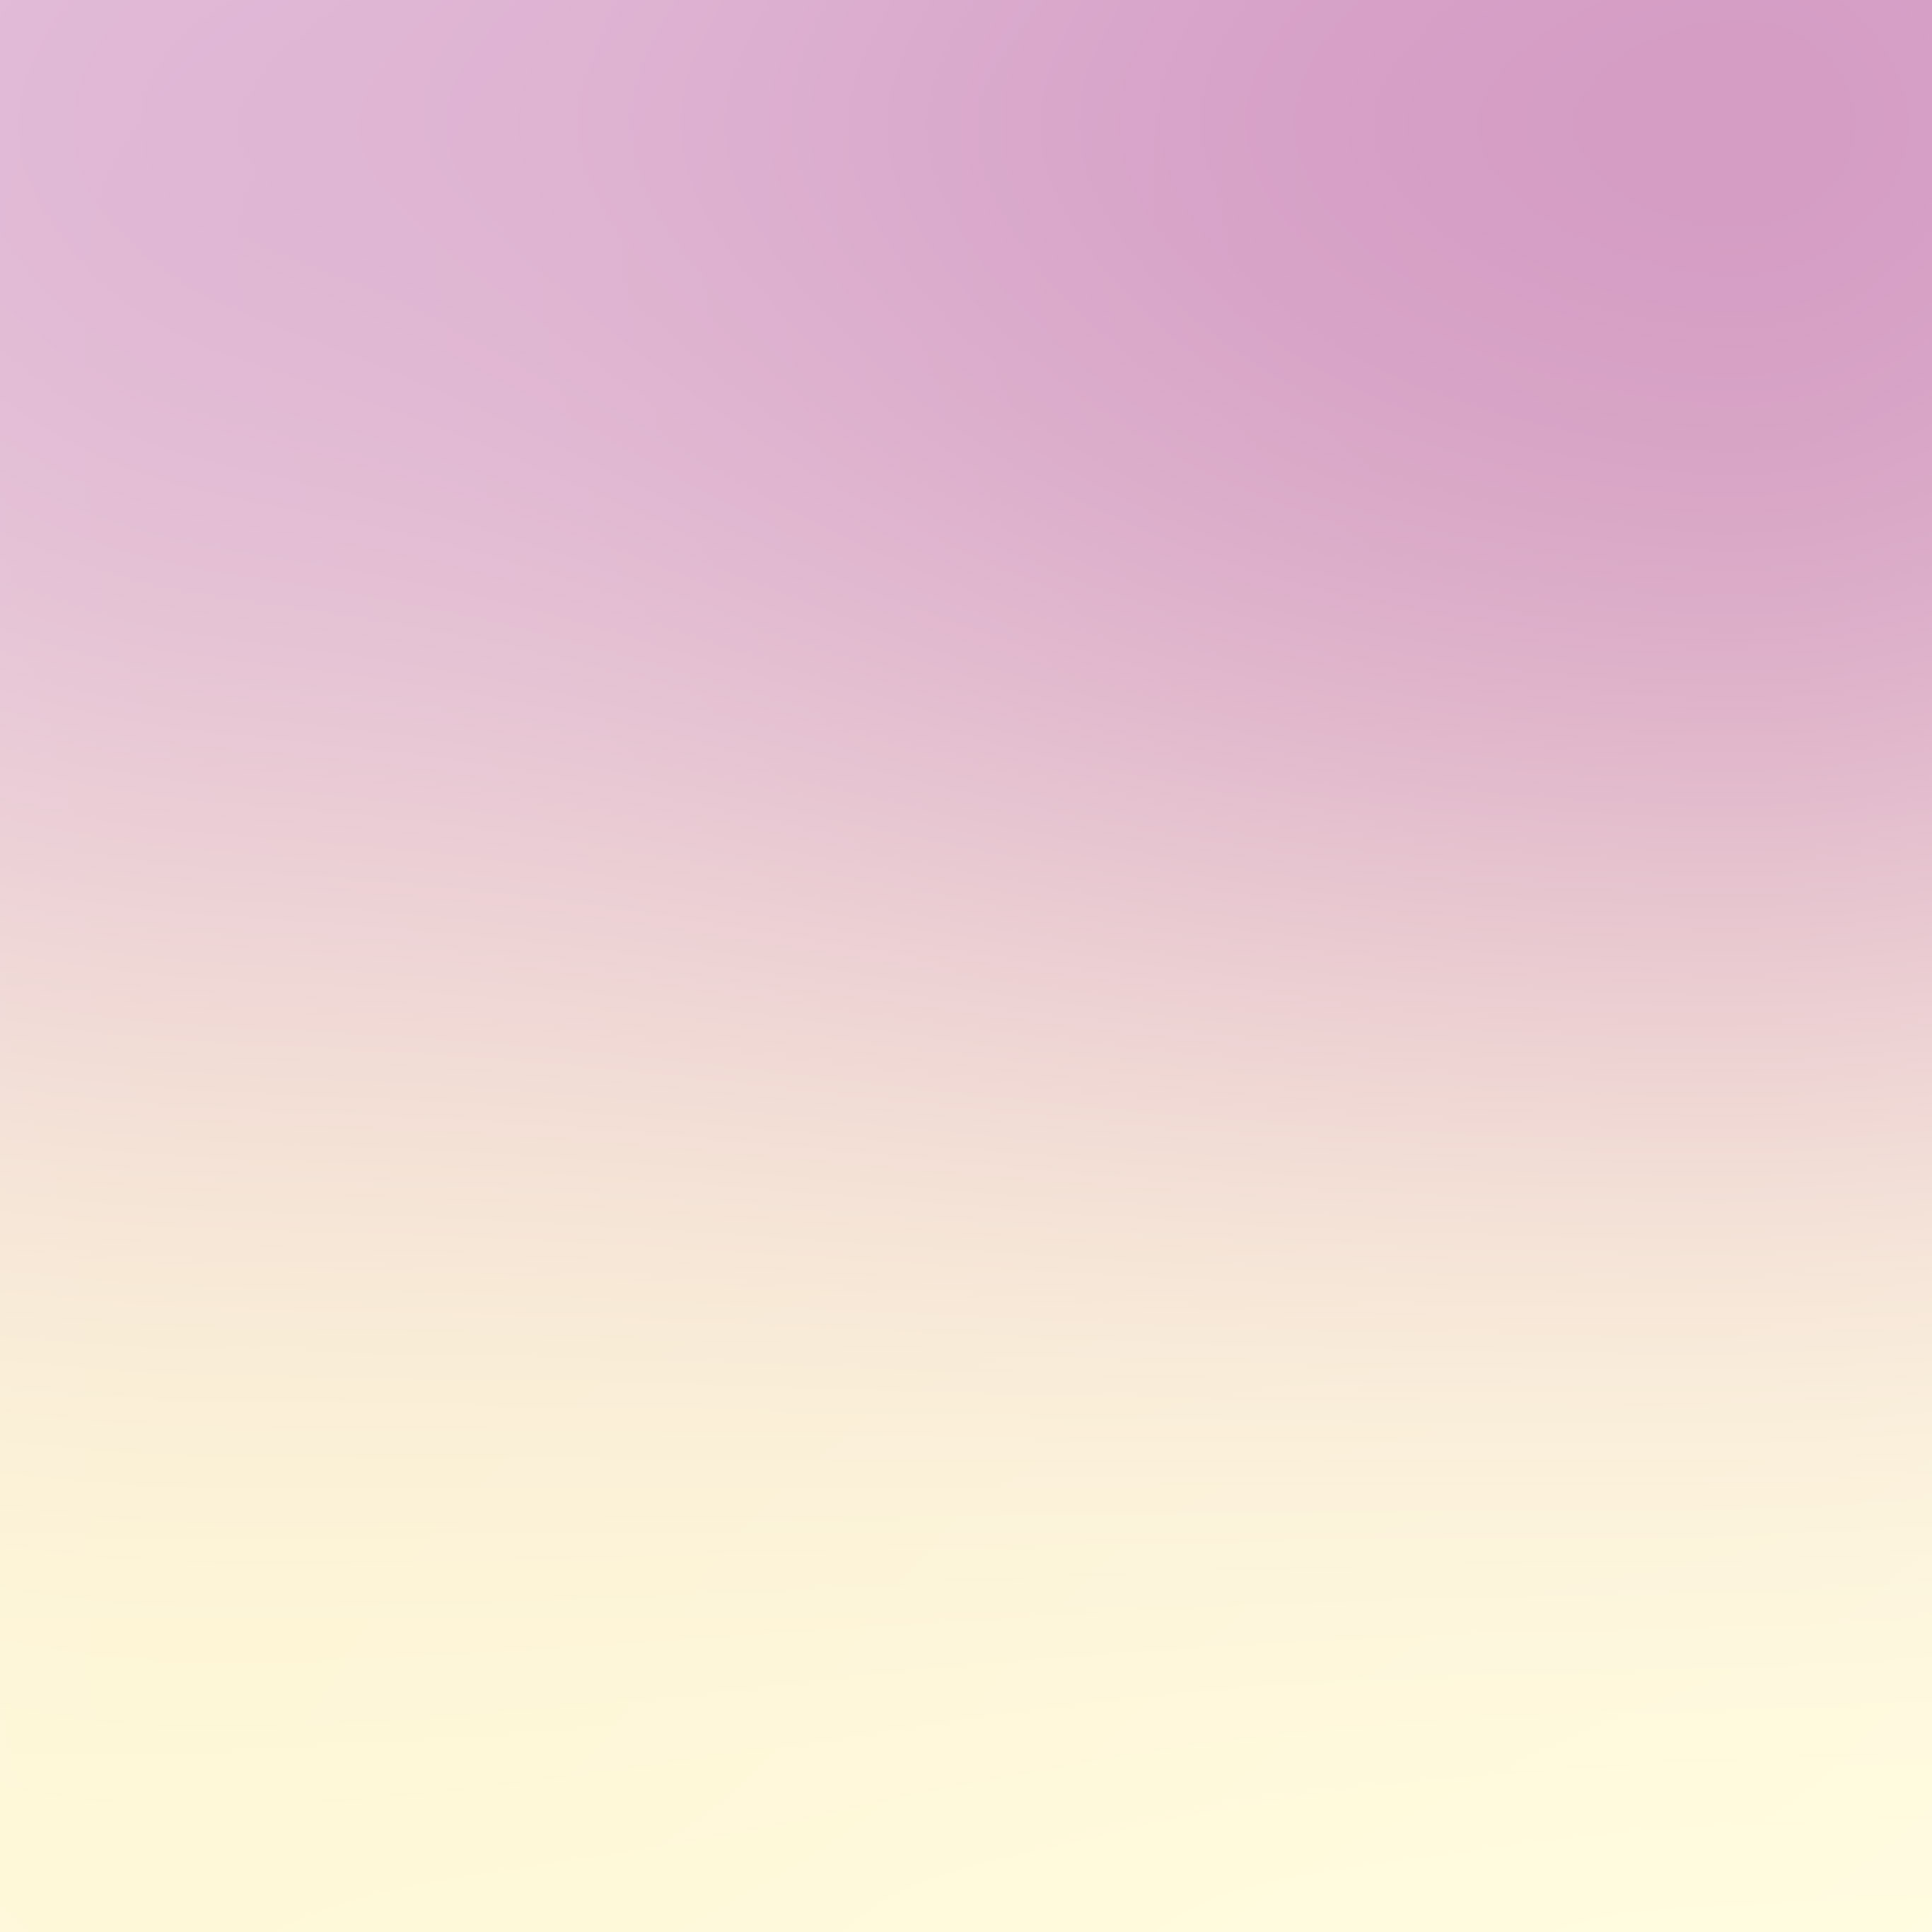 Sn23 Pastel Soft Red Pink Blur Gradation Wallpaper